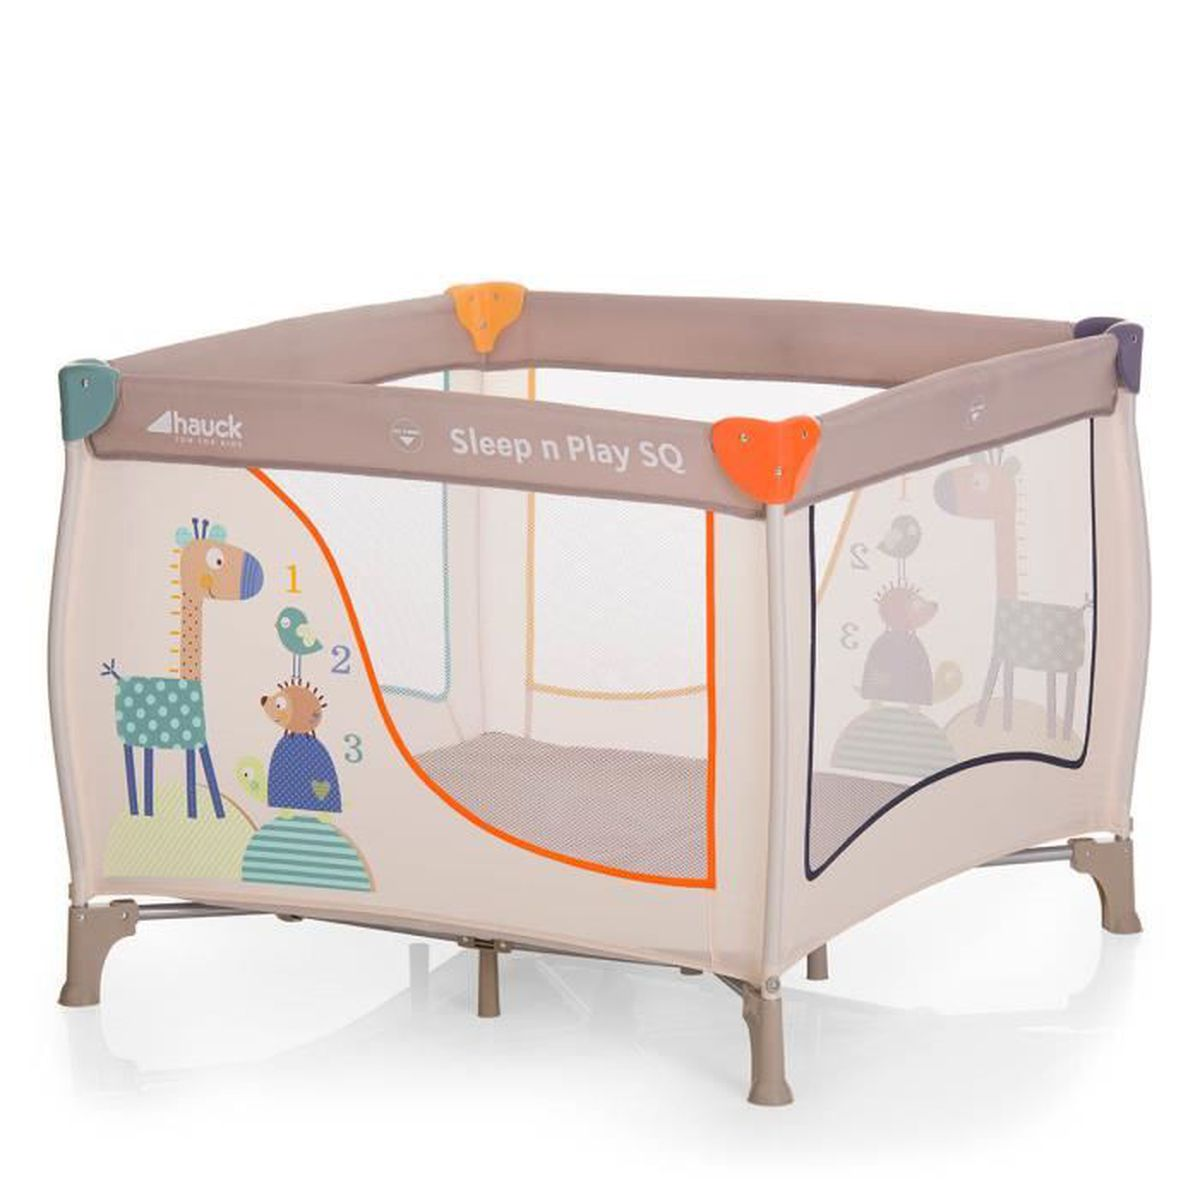 lit parapluie hauck sleep and play sq animals beige achat vente lit pliant 4007923606124. Black Bedroom Furniture Sets. Home Design Ideas